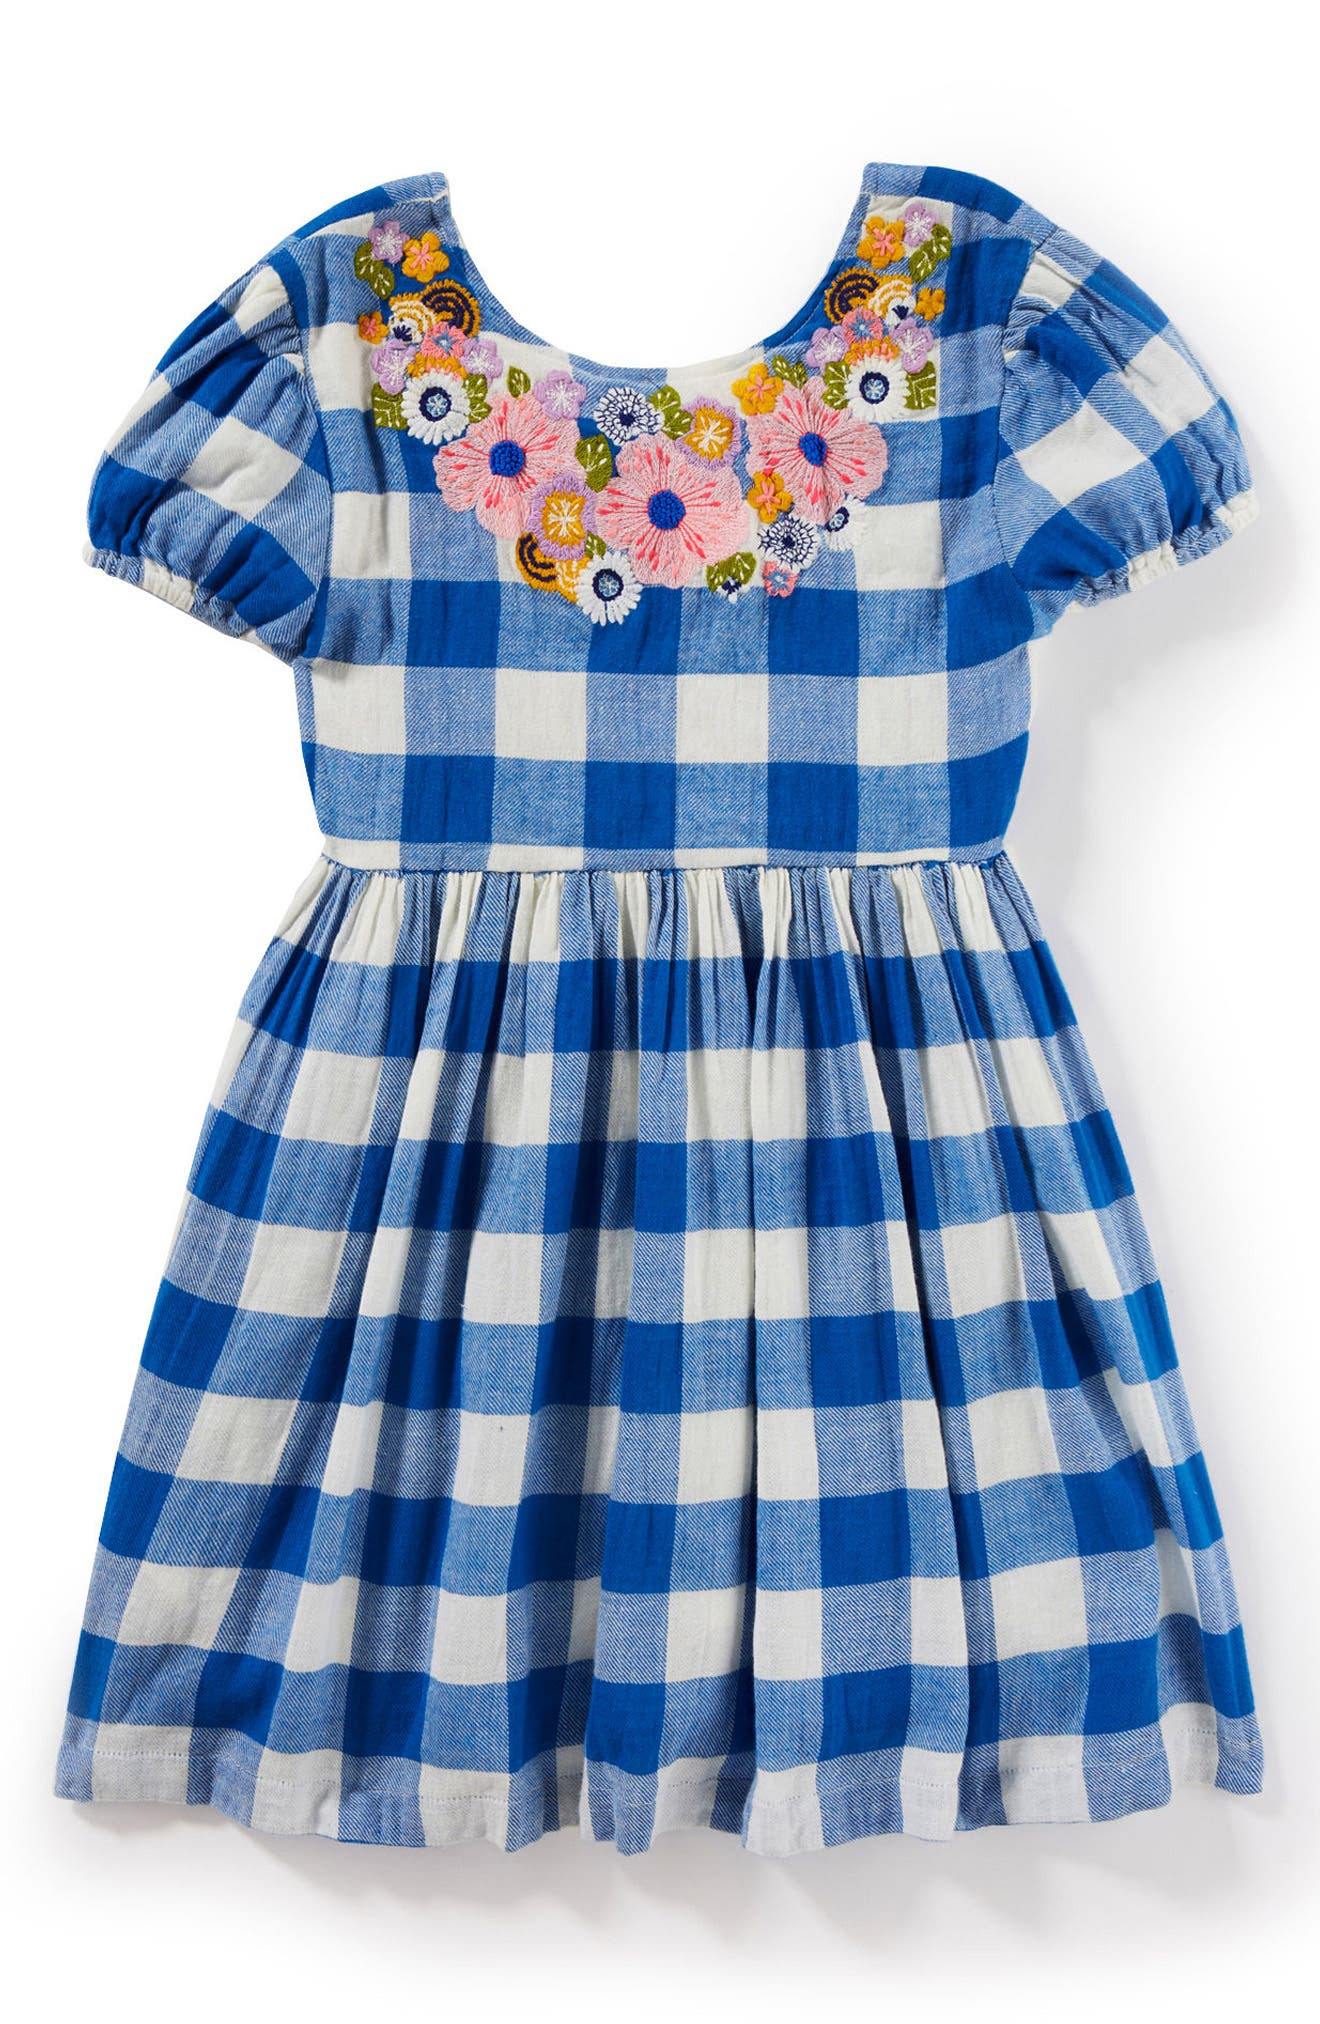 Peek Penelope Embroidered Check Dress (Toddler Girls, Little Girls & Big Girls)